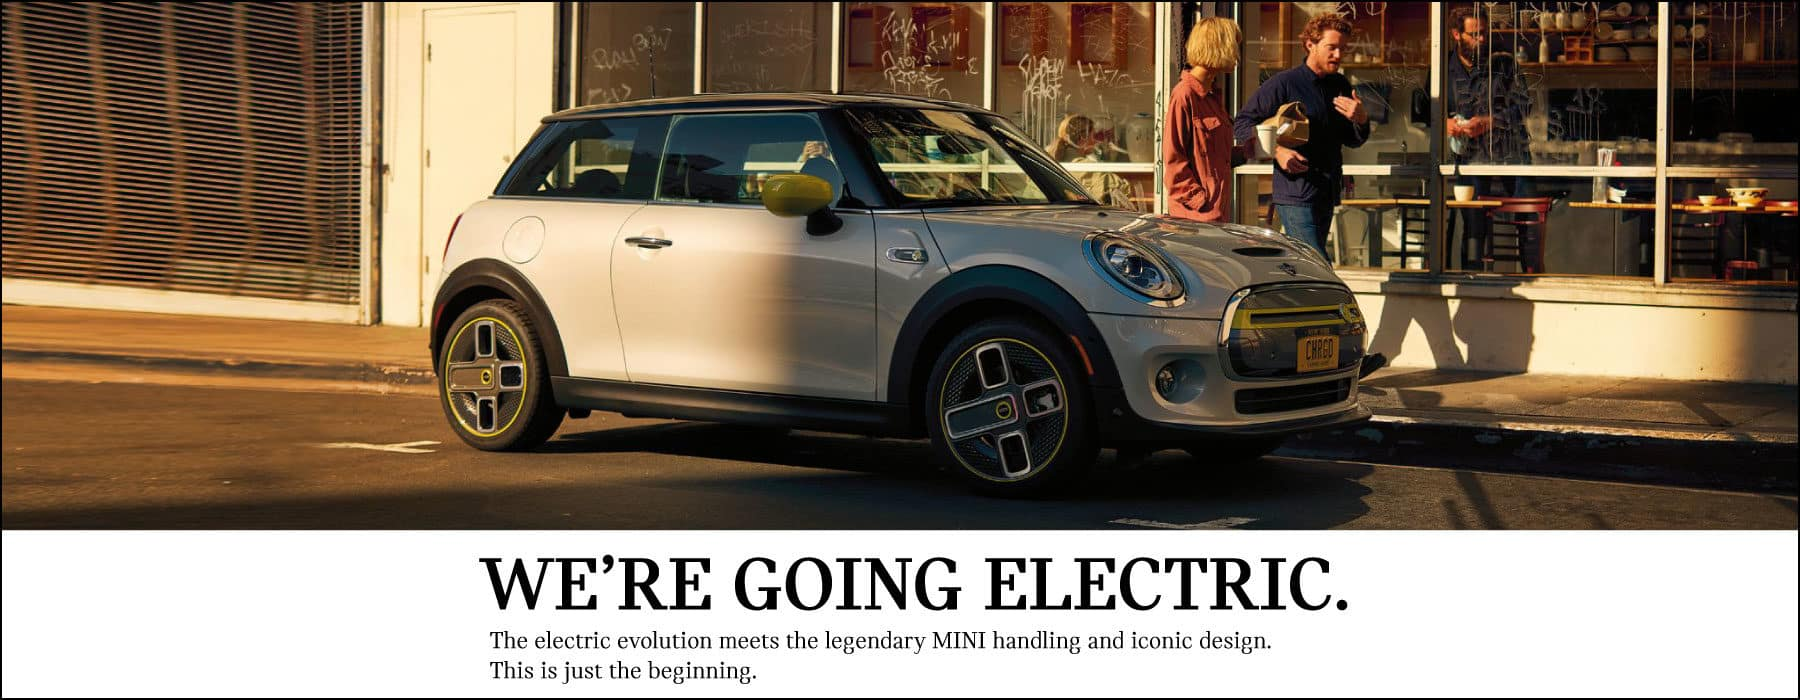 We're Going Electric.  The electric evolution meets the legendary MINI handling and iconic design.  This is just the beginning.